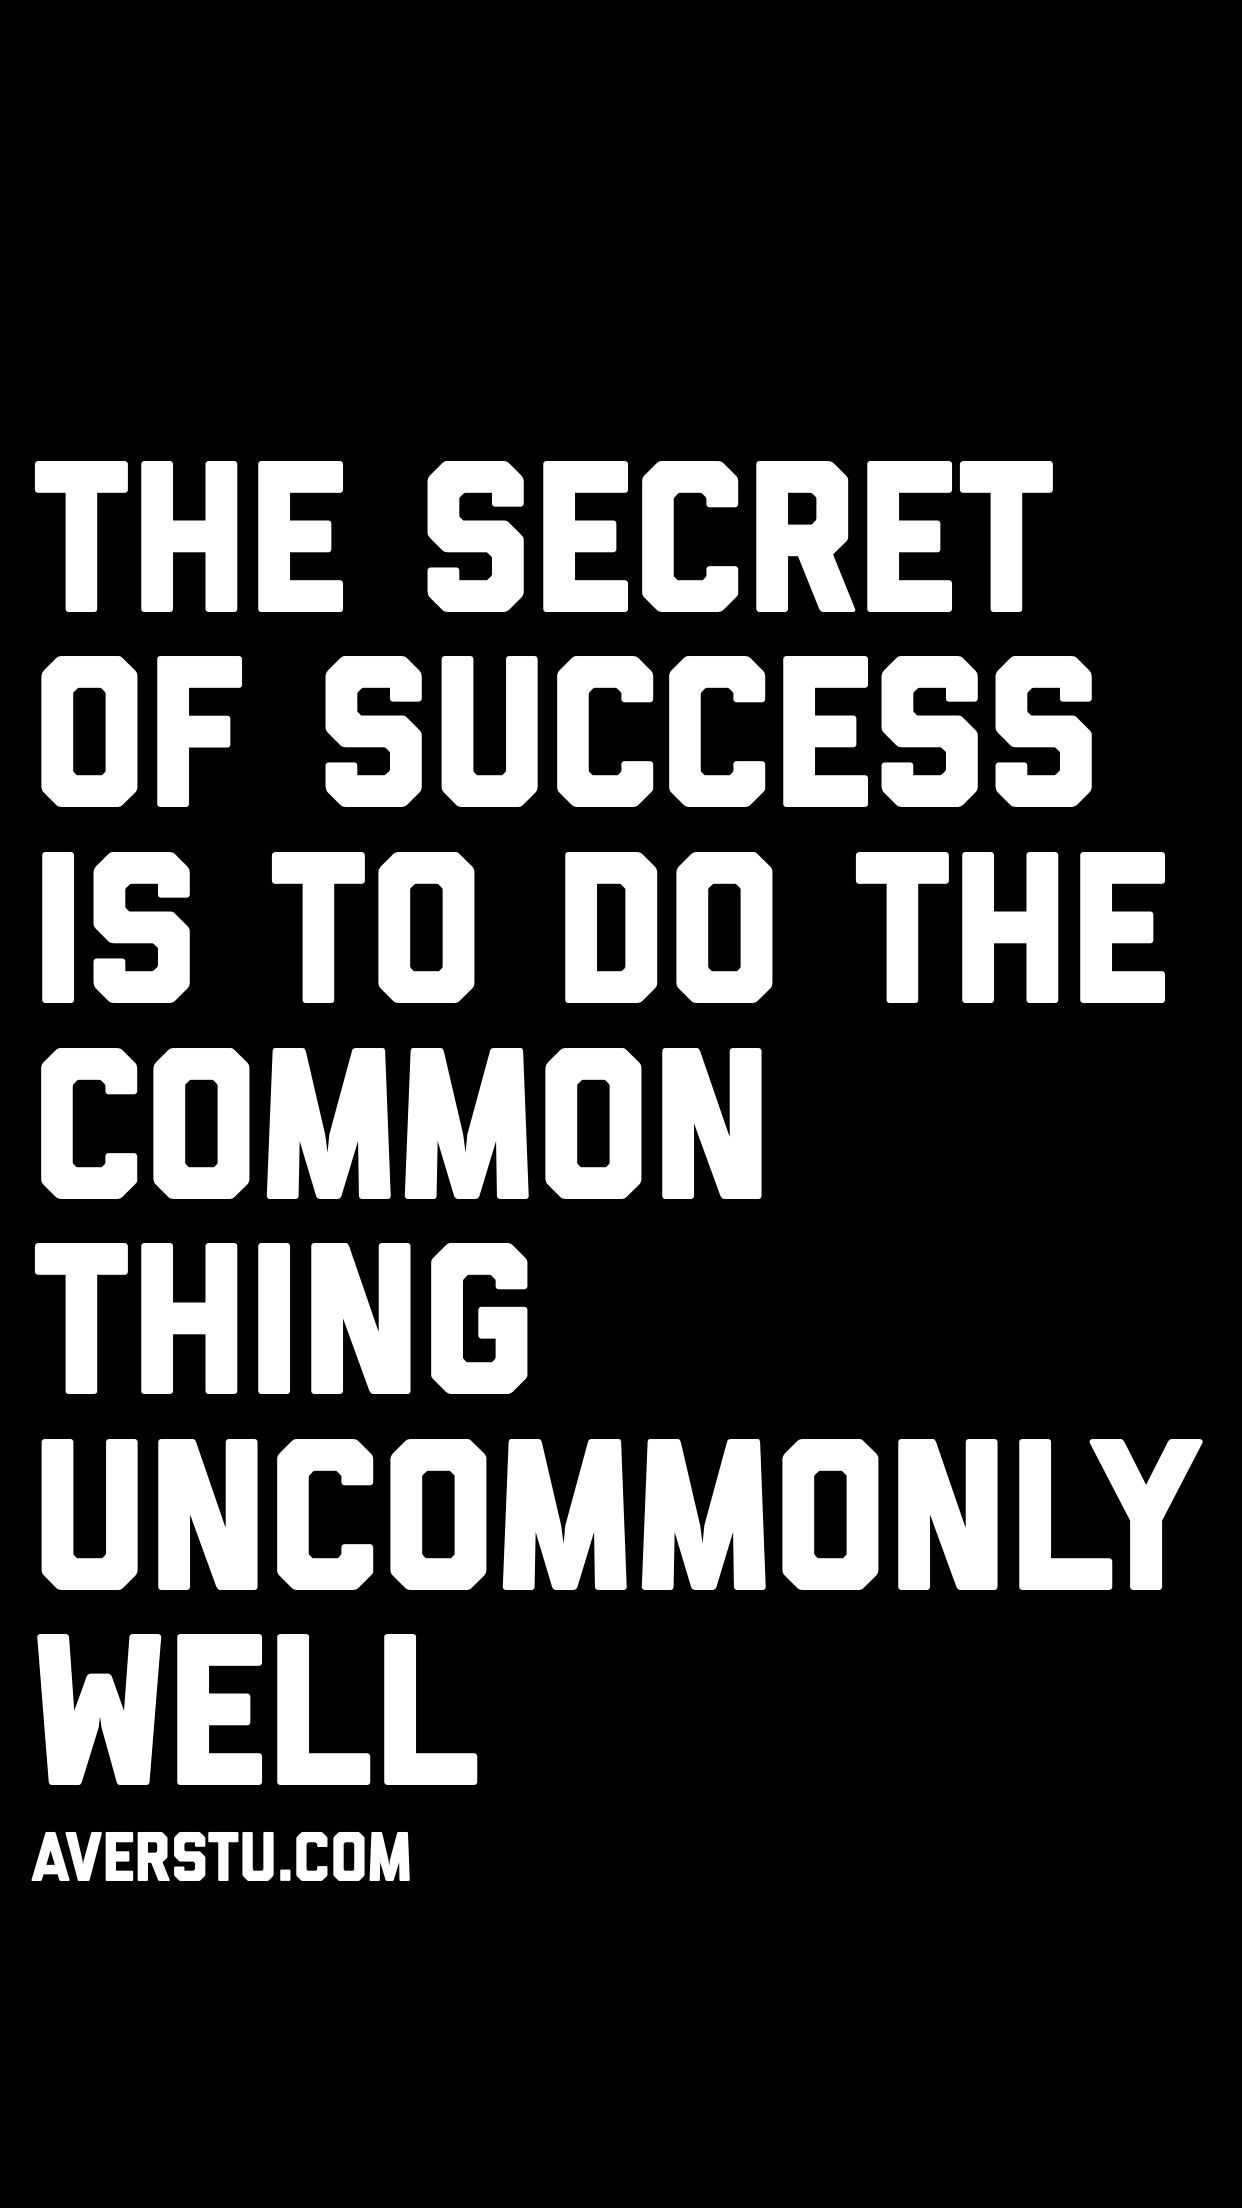 Success Quotes Business Quotes Positive Vibe Quotes Inspiration Daily Positivebusinessquotes